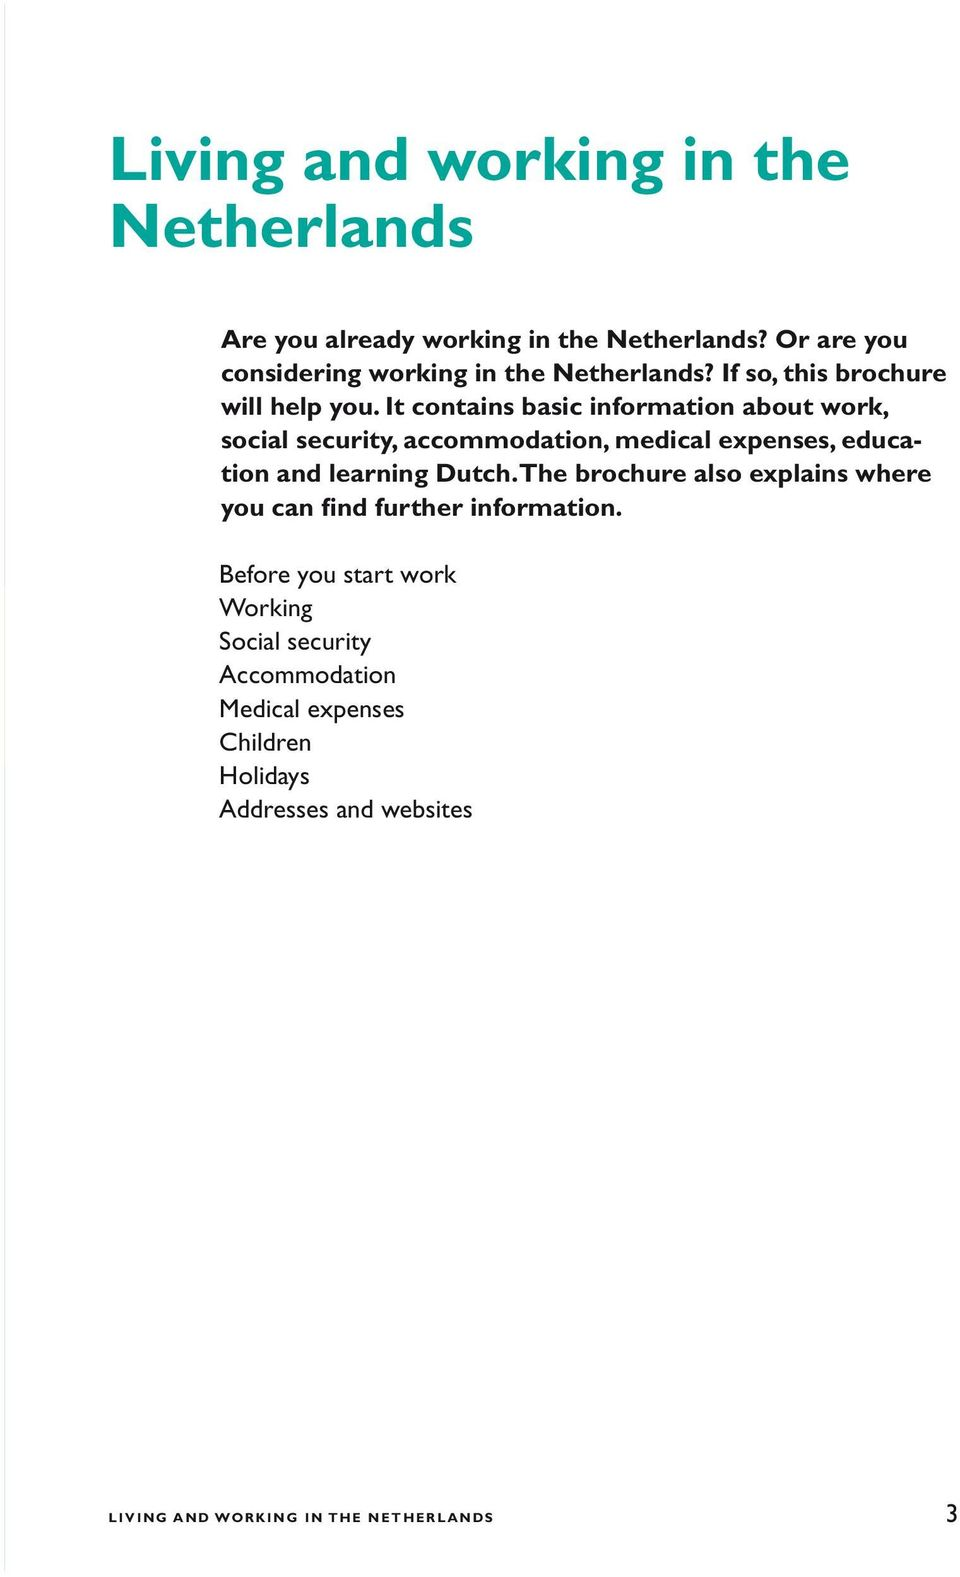 It contains basic information about work, social security, accommodation, medical expenses, education and learning Dutch.